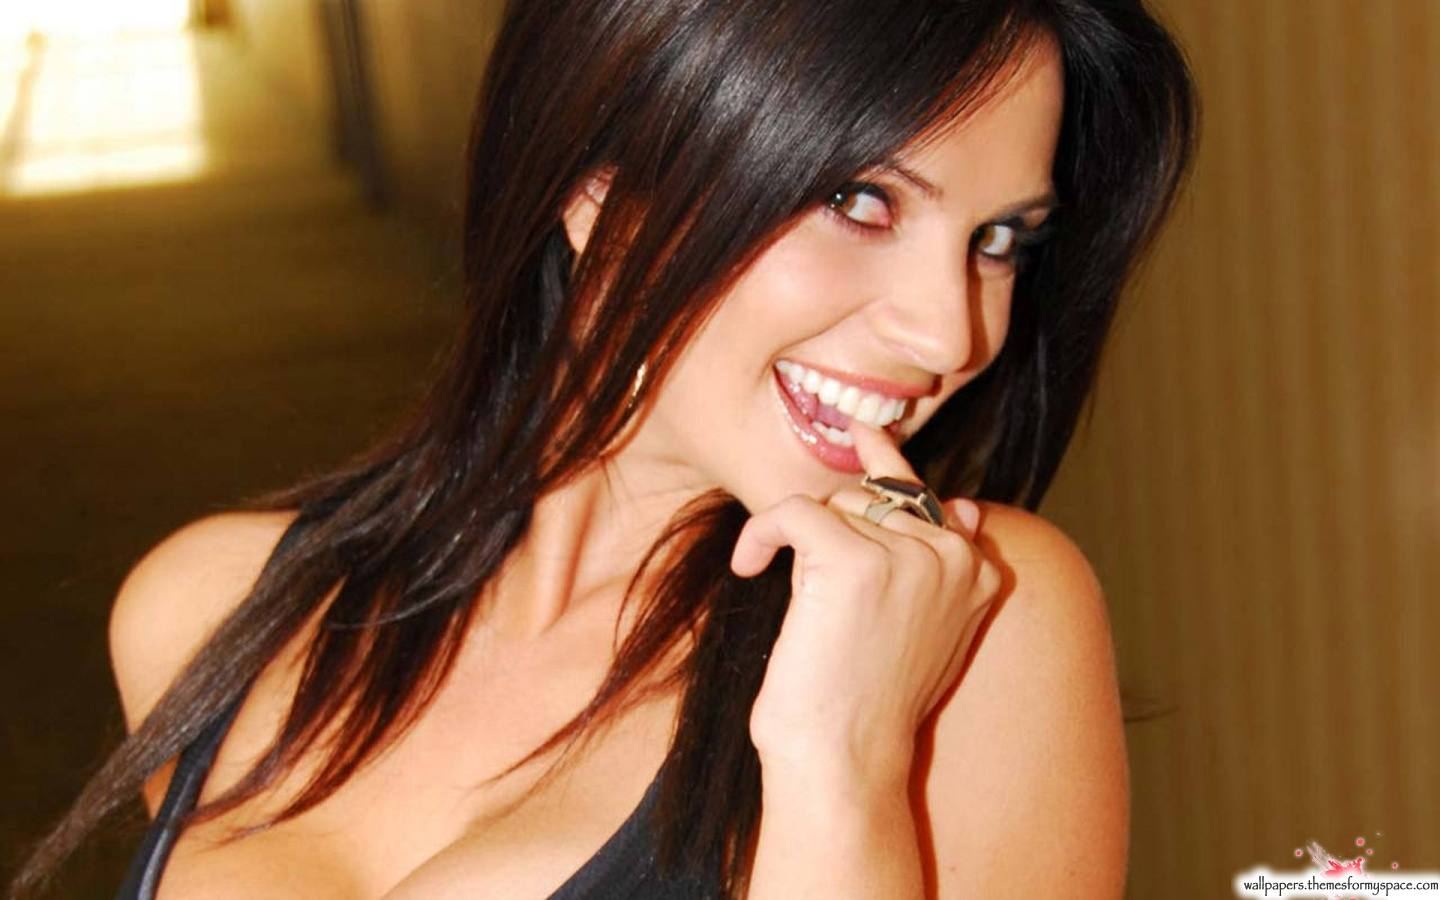 Google Image Result for http://wallpapers.themesformyspace.com/uploads/images/denise-milani-1440x900-34896.jpg